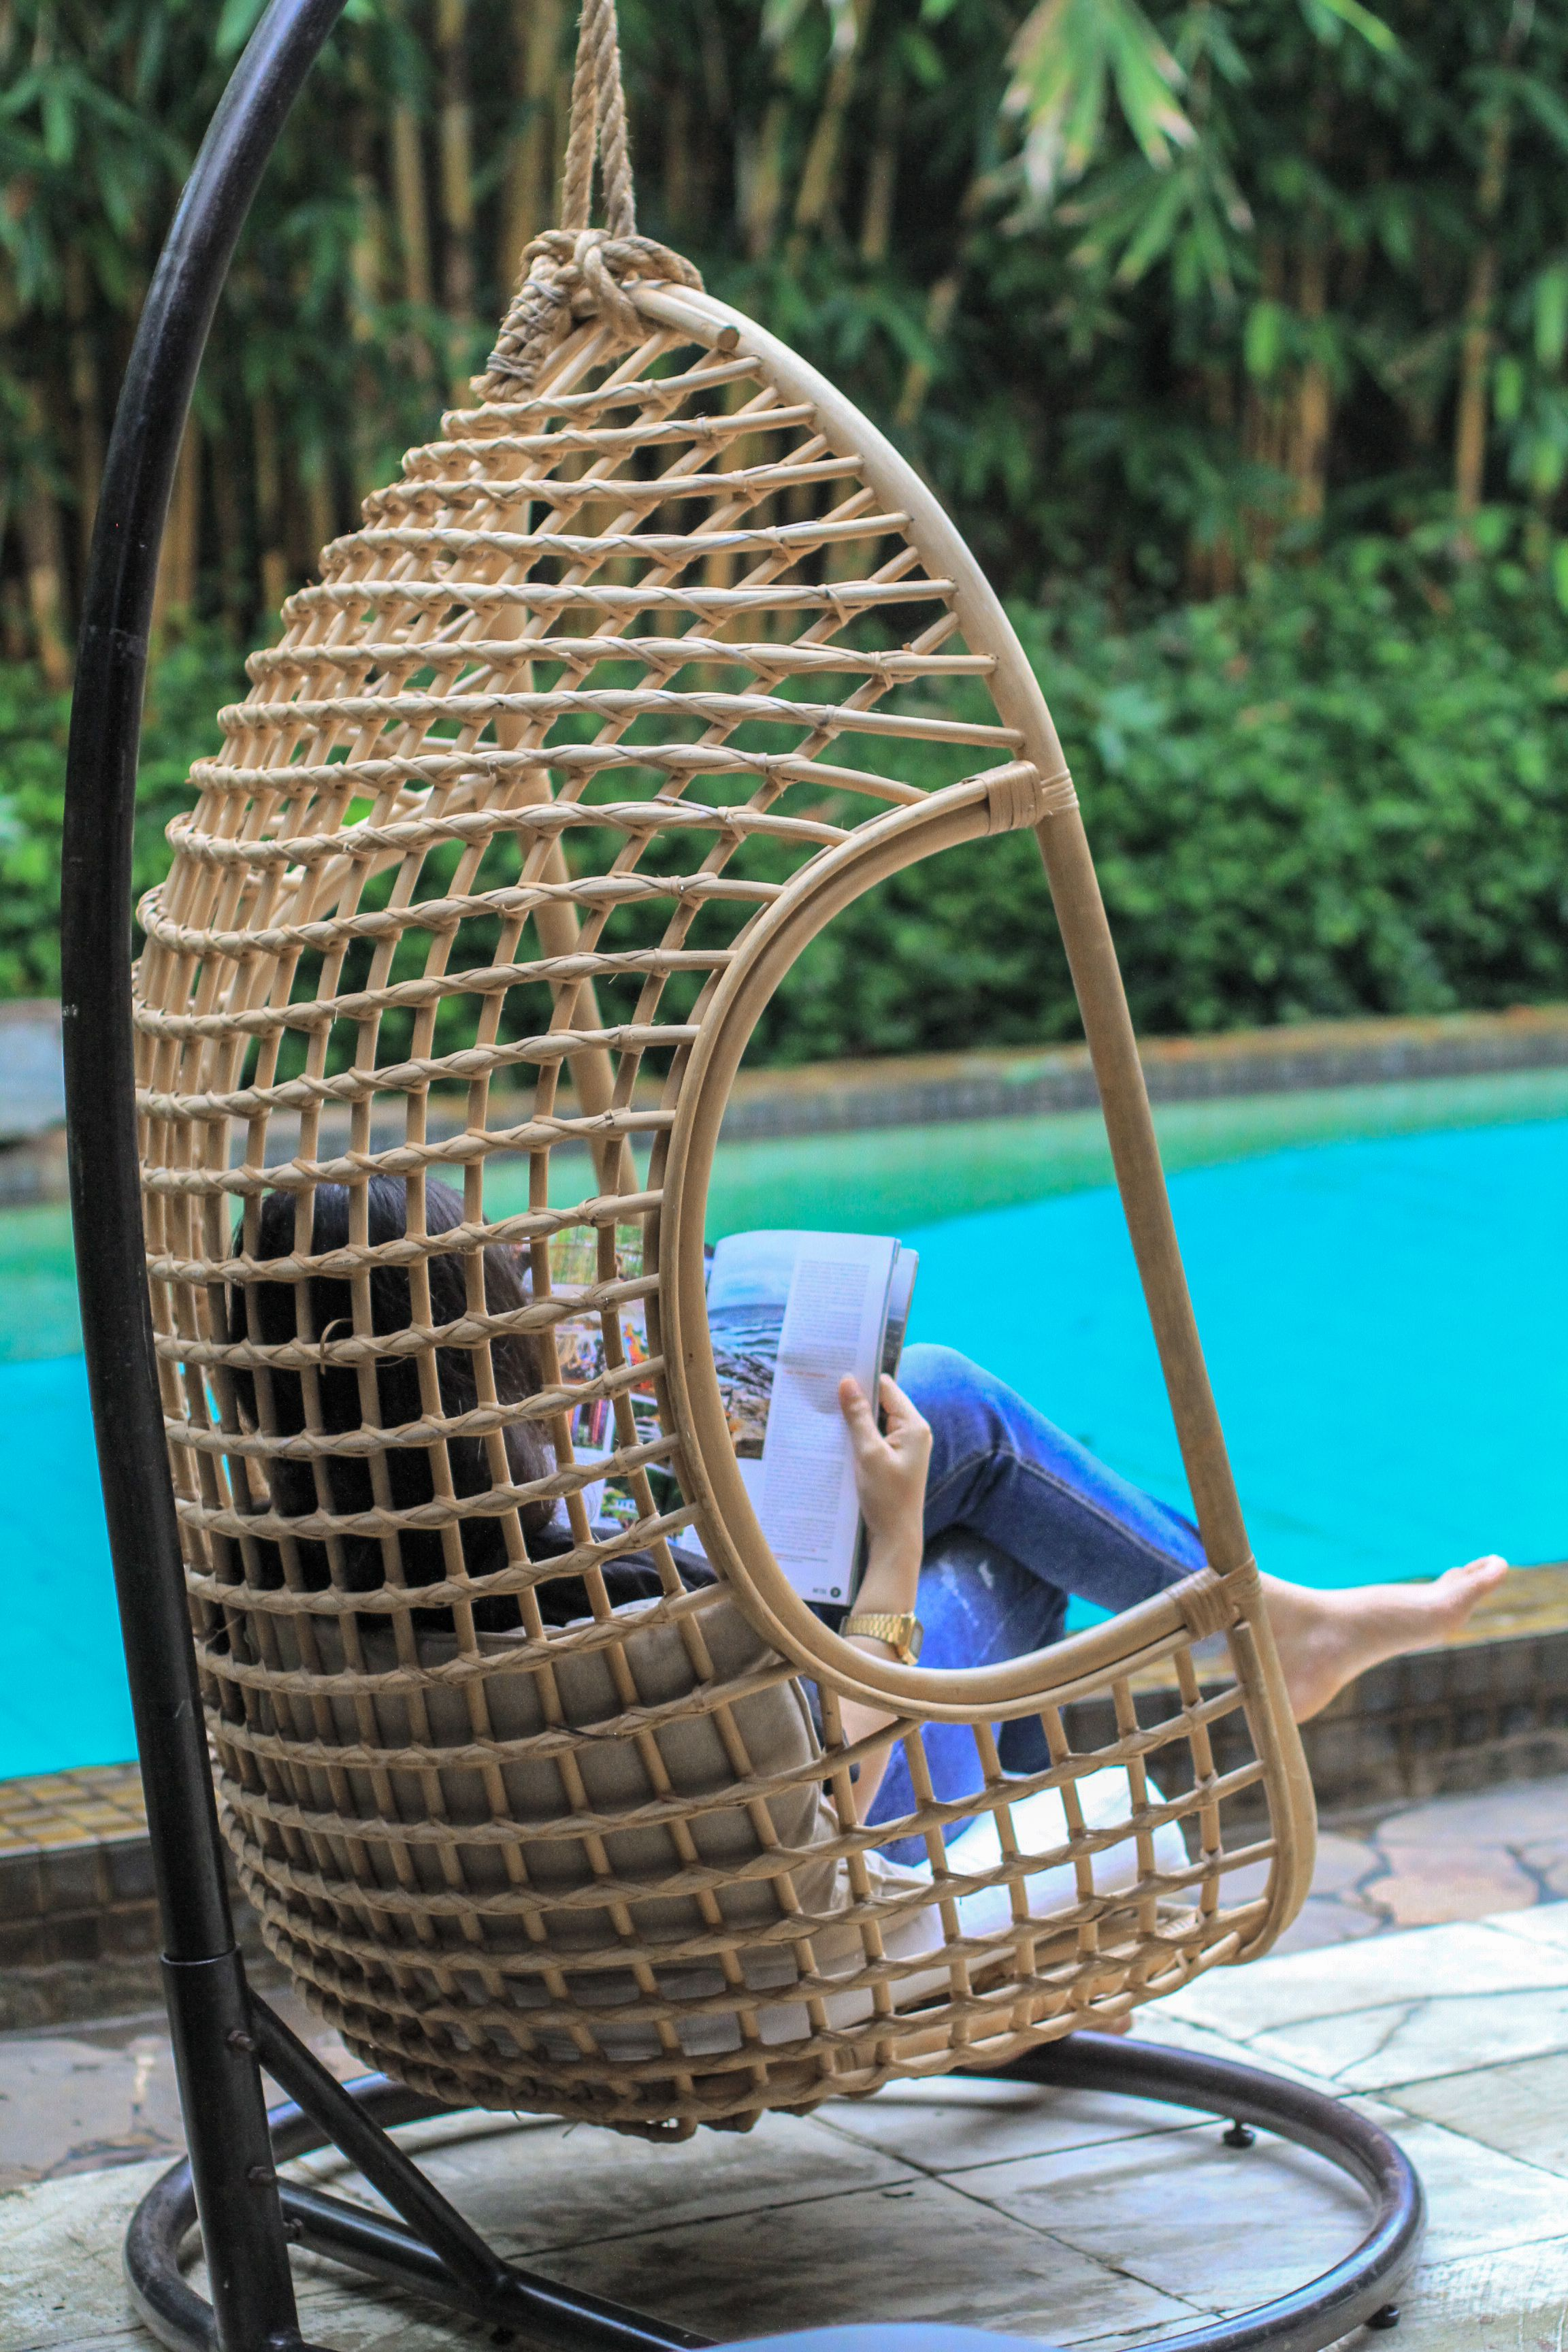 Relaxing on a lazy late afternoon. #elementsconcept #natural #handcrafted #interior #handmade #rattan #wicker #furniture #interiordesign